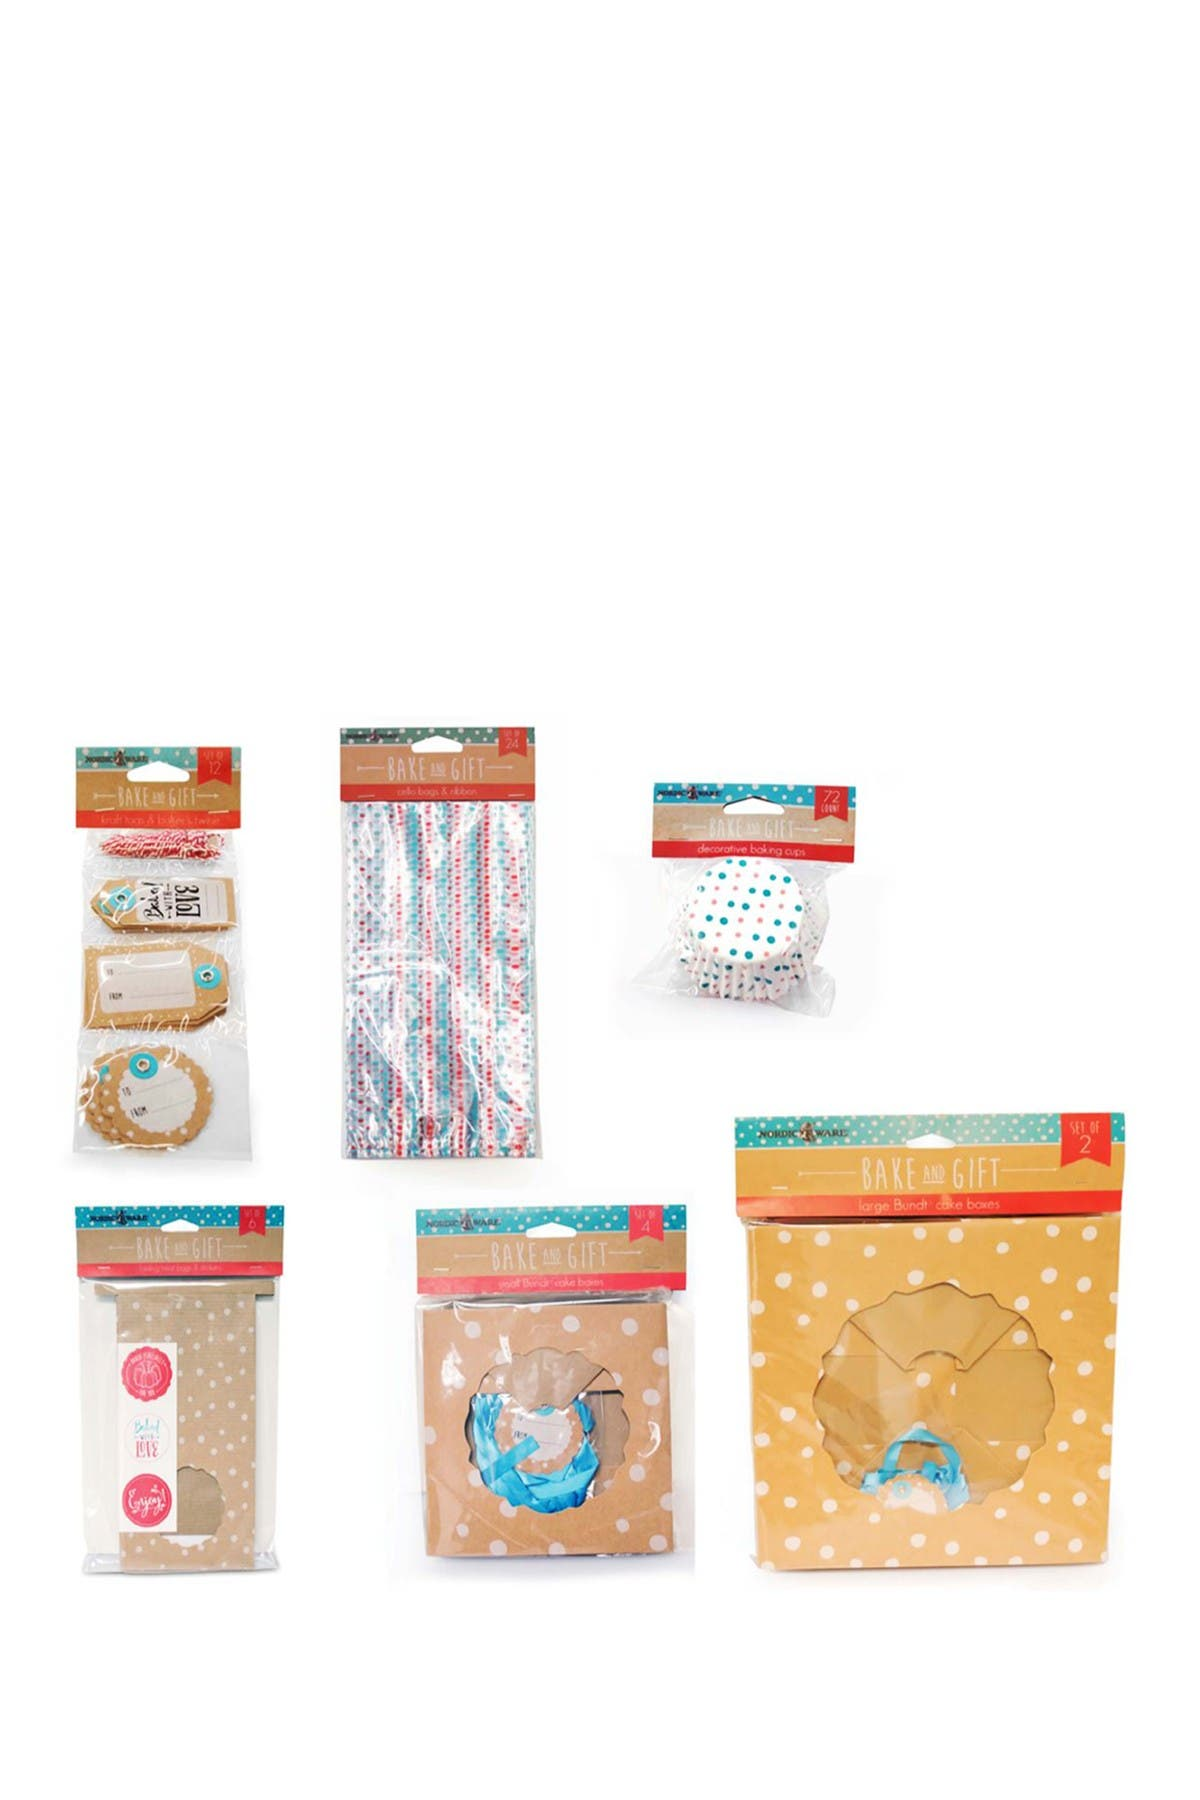 Image of Nordic Ware Baking Combo Gift Pack